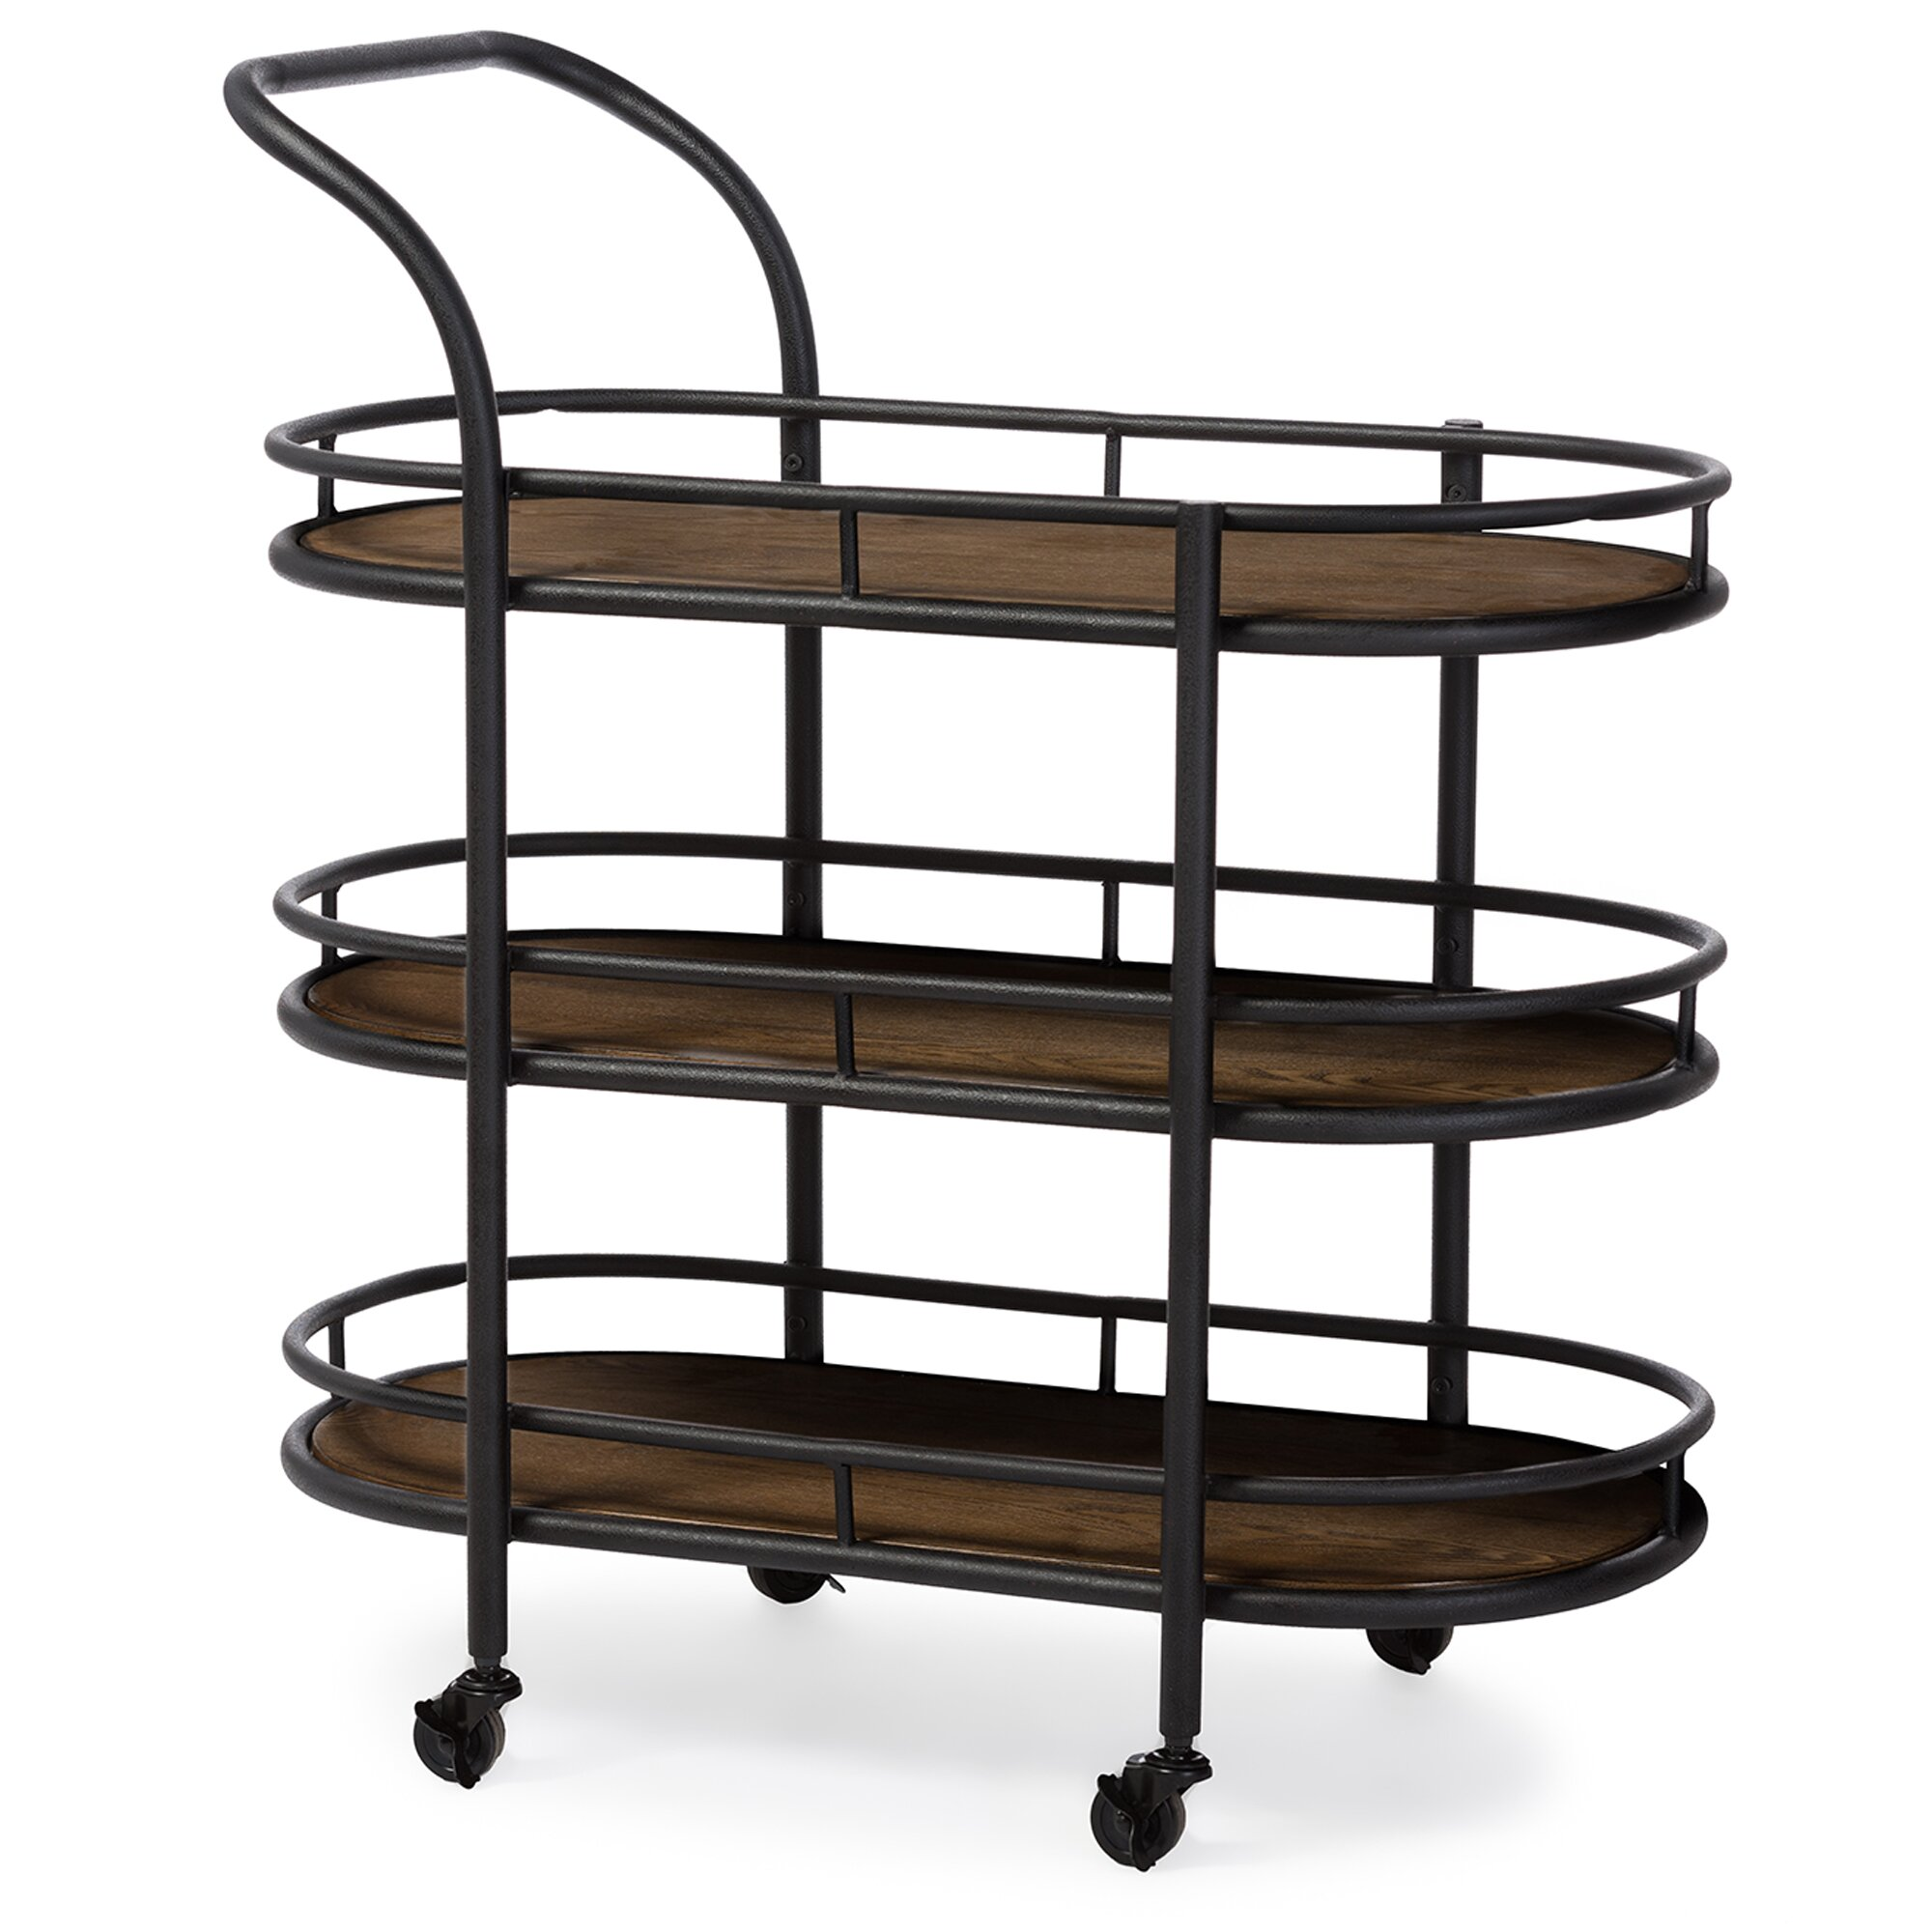 Bentley Industrial Metal And Wood Wheeled Kitchen Serving: Wholesale Interiors Karlin Serving Cart & Reviews